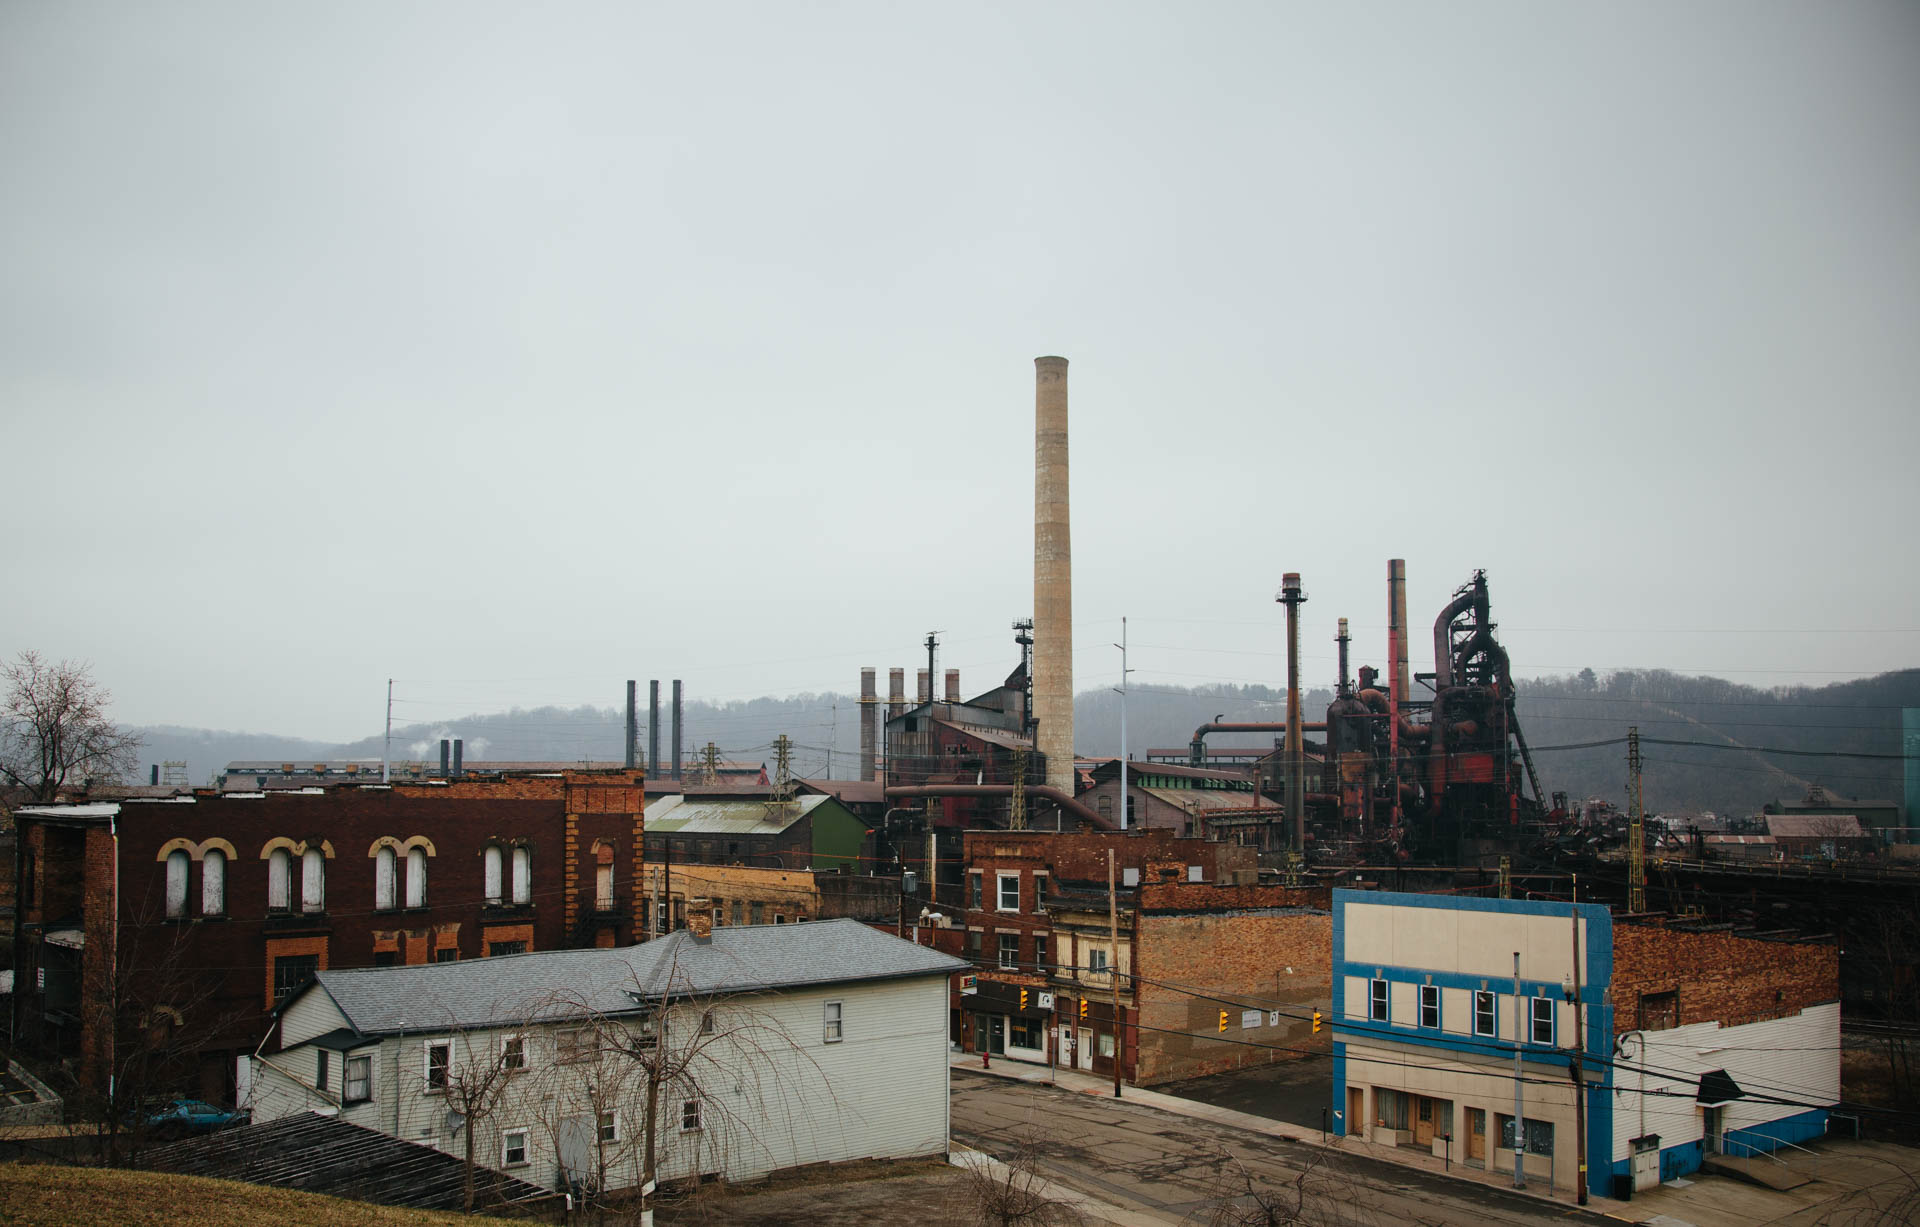 overlook-mingo-junction-downtown-steel-mill-4423untitled